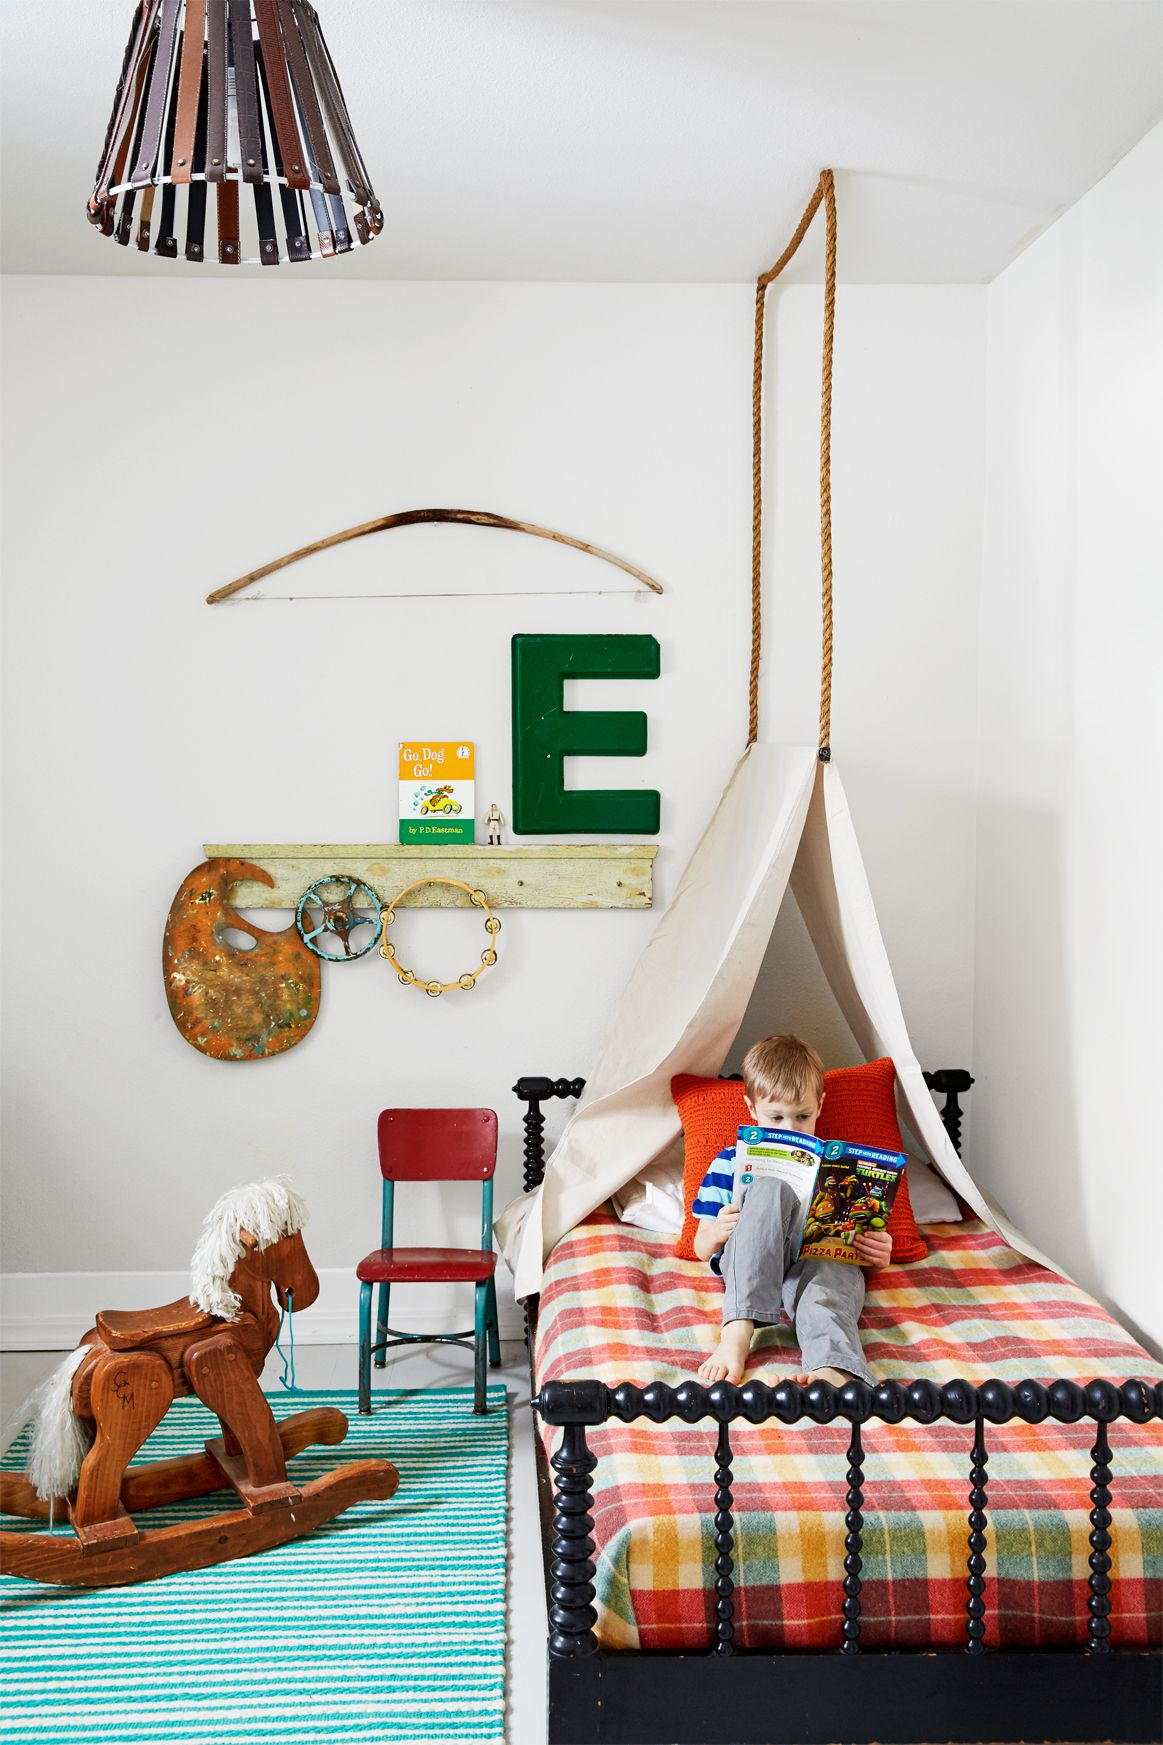 50+ Kids Room Decor Ideas – Bedroom Design and Decorating ... Nautical Bedroom Decorating Ideas For Rice Beds on nautical decorating ideas for bar, nautical themed bedroom ideas, nautical curtains for bedrooms, nautical decorating ideas for decks, nautical accessories for bedrooms, nautical wallpaper for bedrooms, nautical decorating ideas for office, nautical colors for bedrooms, nautical decorating ideas kitchen, nautical decorating ideas for outdoors, nautical theme boys room, nautical bathroom decorating ideas, nautical themed rooms,